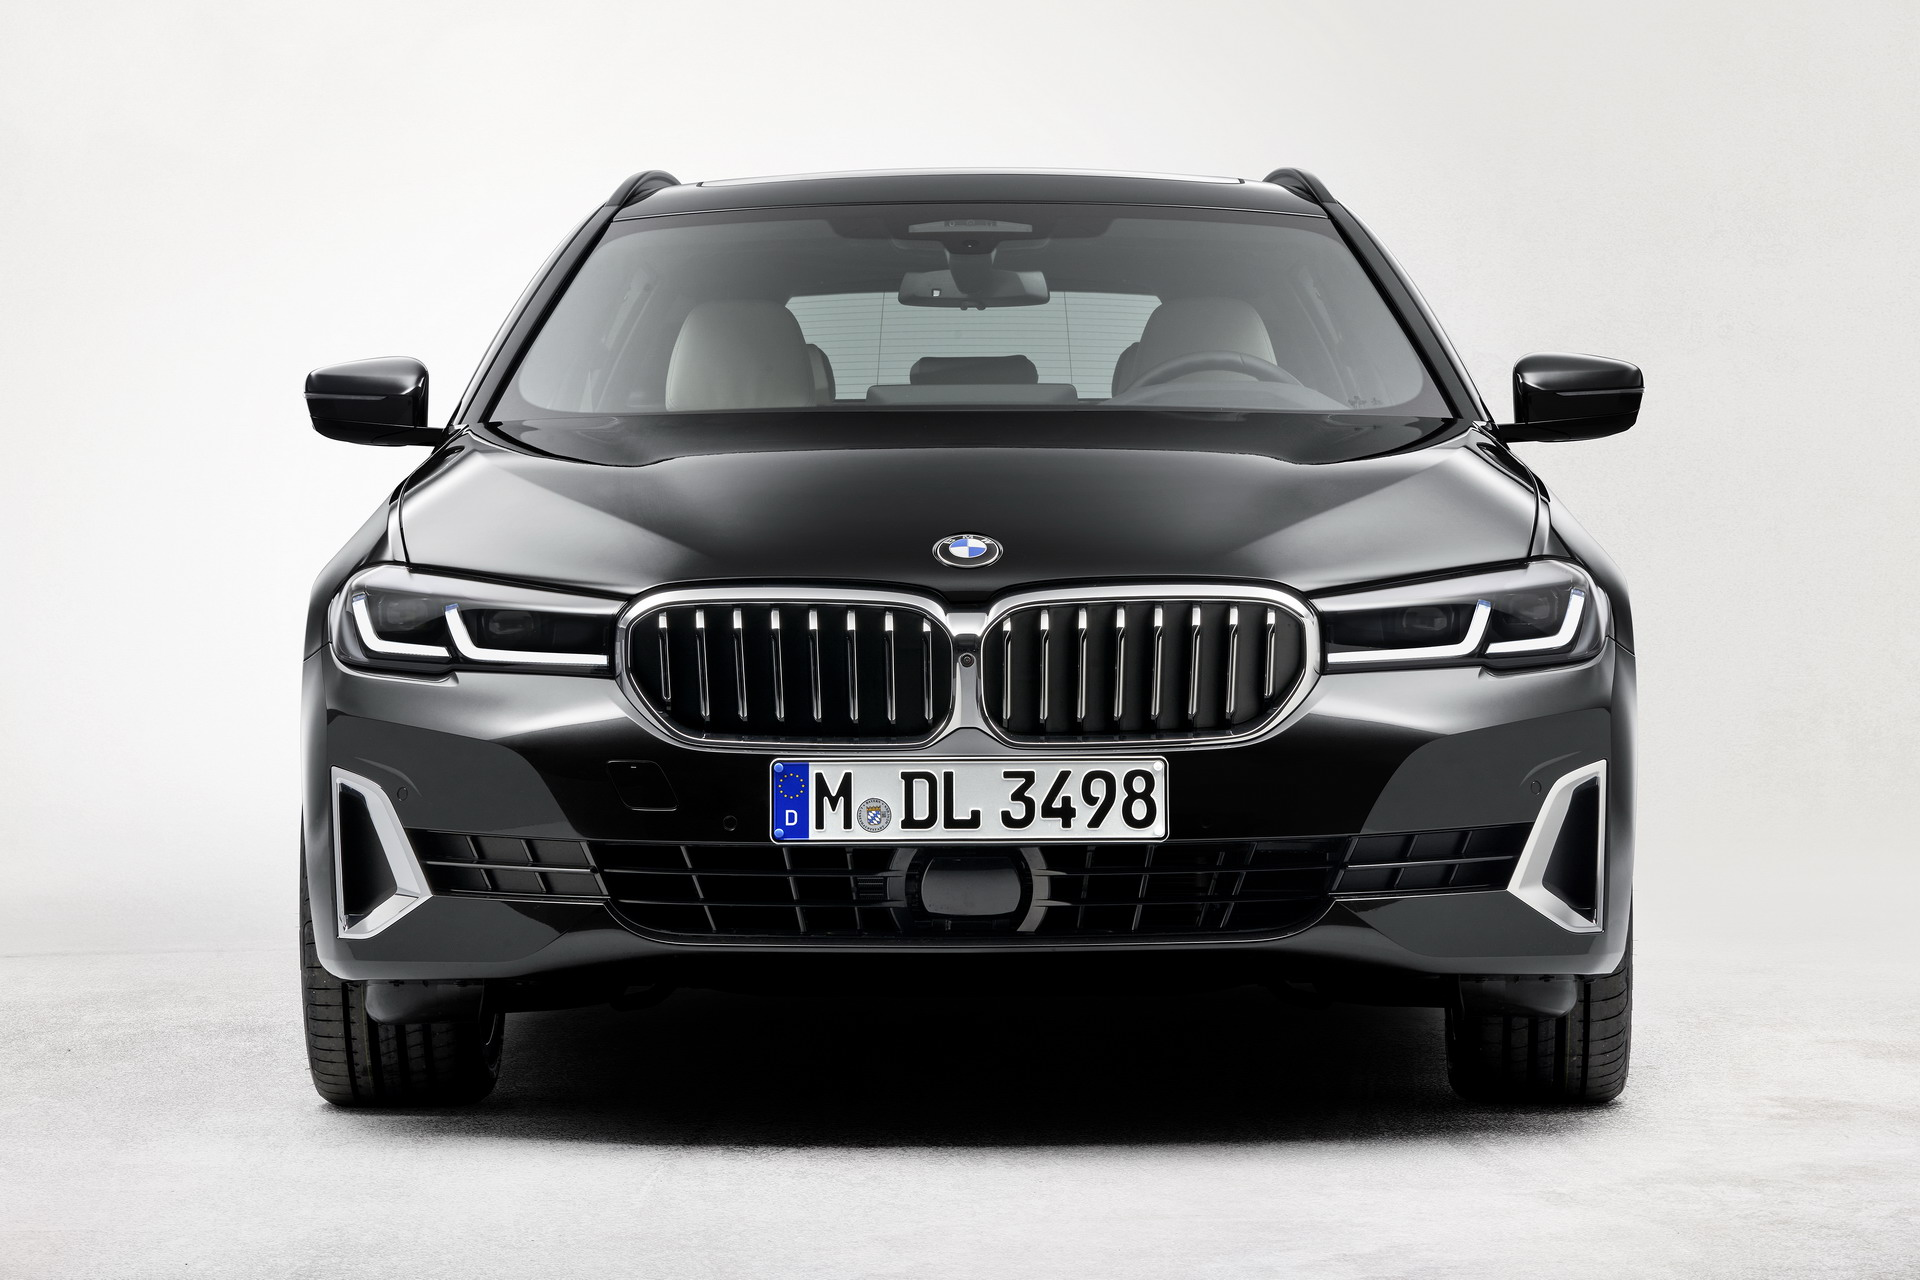 The New BMW 530i Touring Luxury Line G31 LCI 21